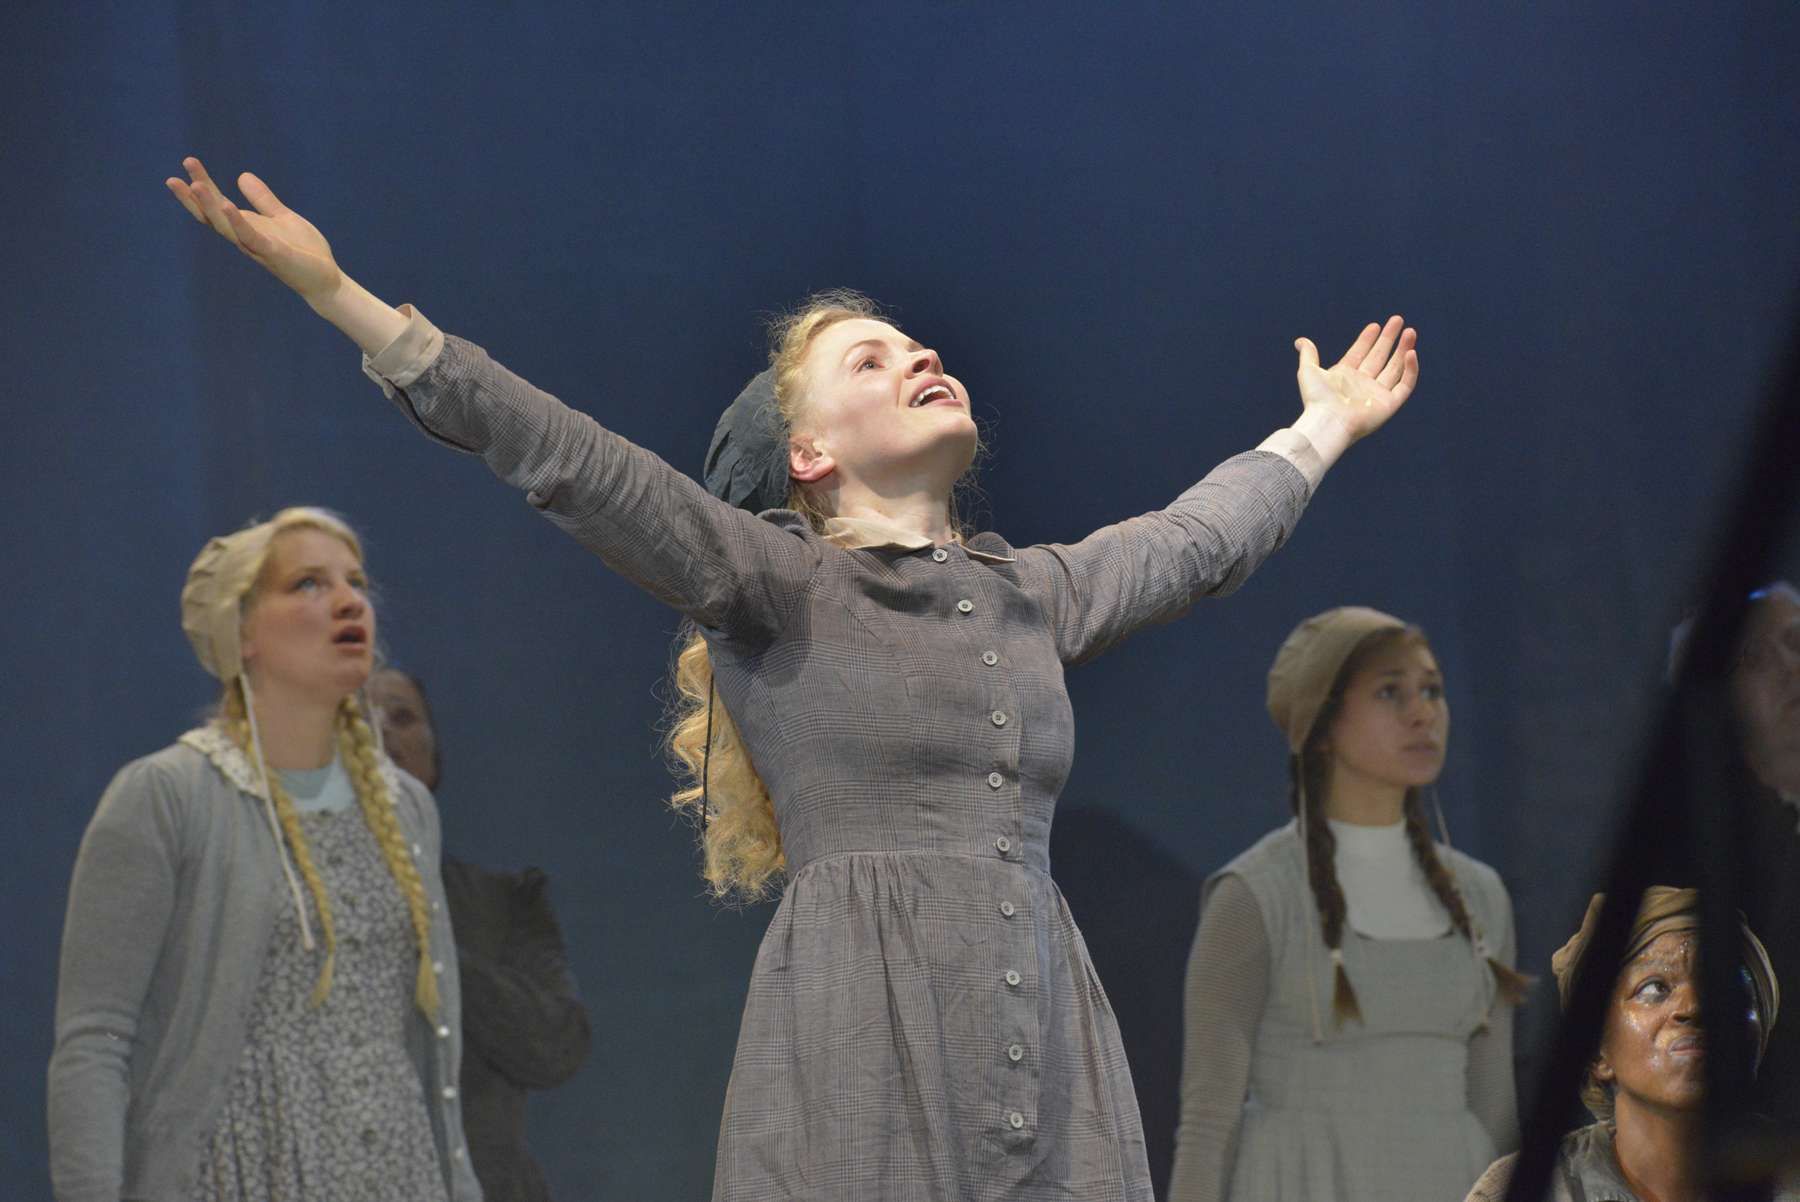 crucible play review essay The crucible book review essaysarthur miller, the son of a wealthy father who lost all of his money in the crash of 1929, quit school as a young child to.